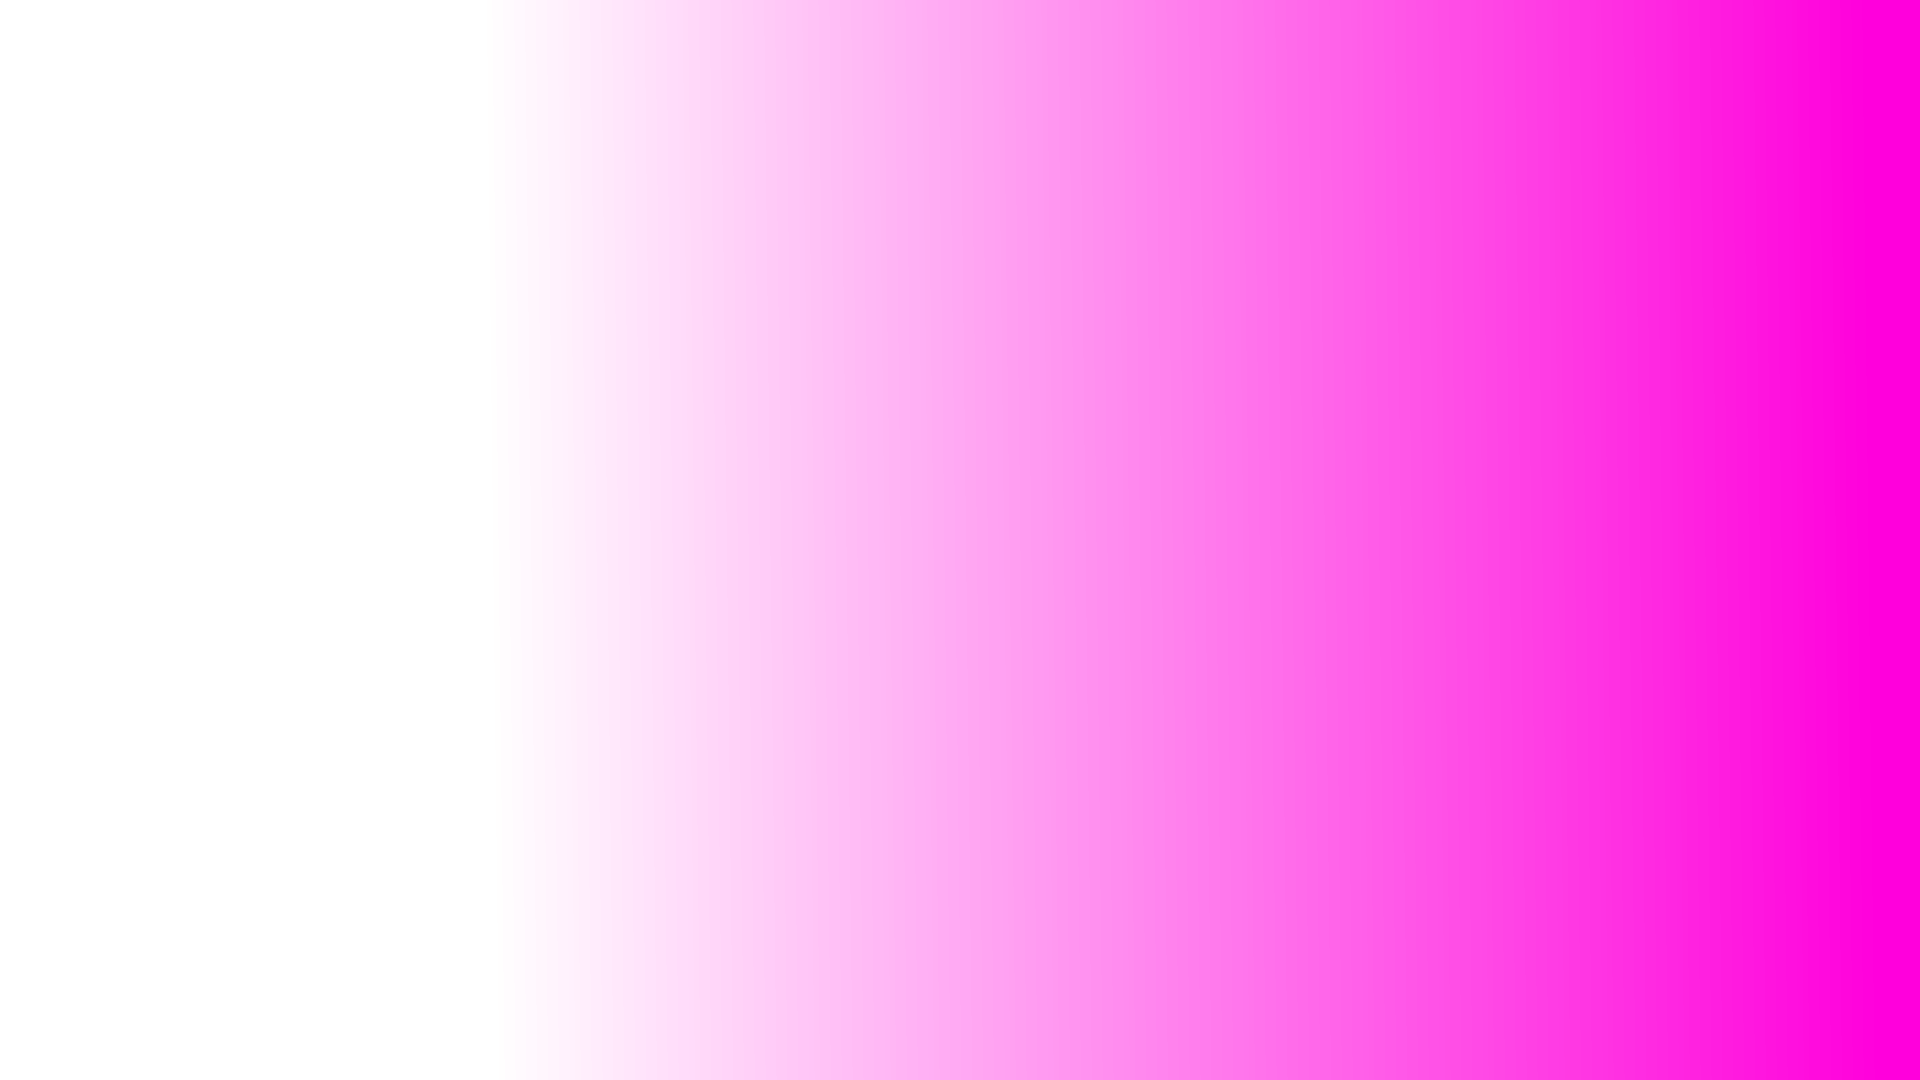 Pink to white gradient wallpaper 654057 for Pink and white wallpaper